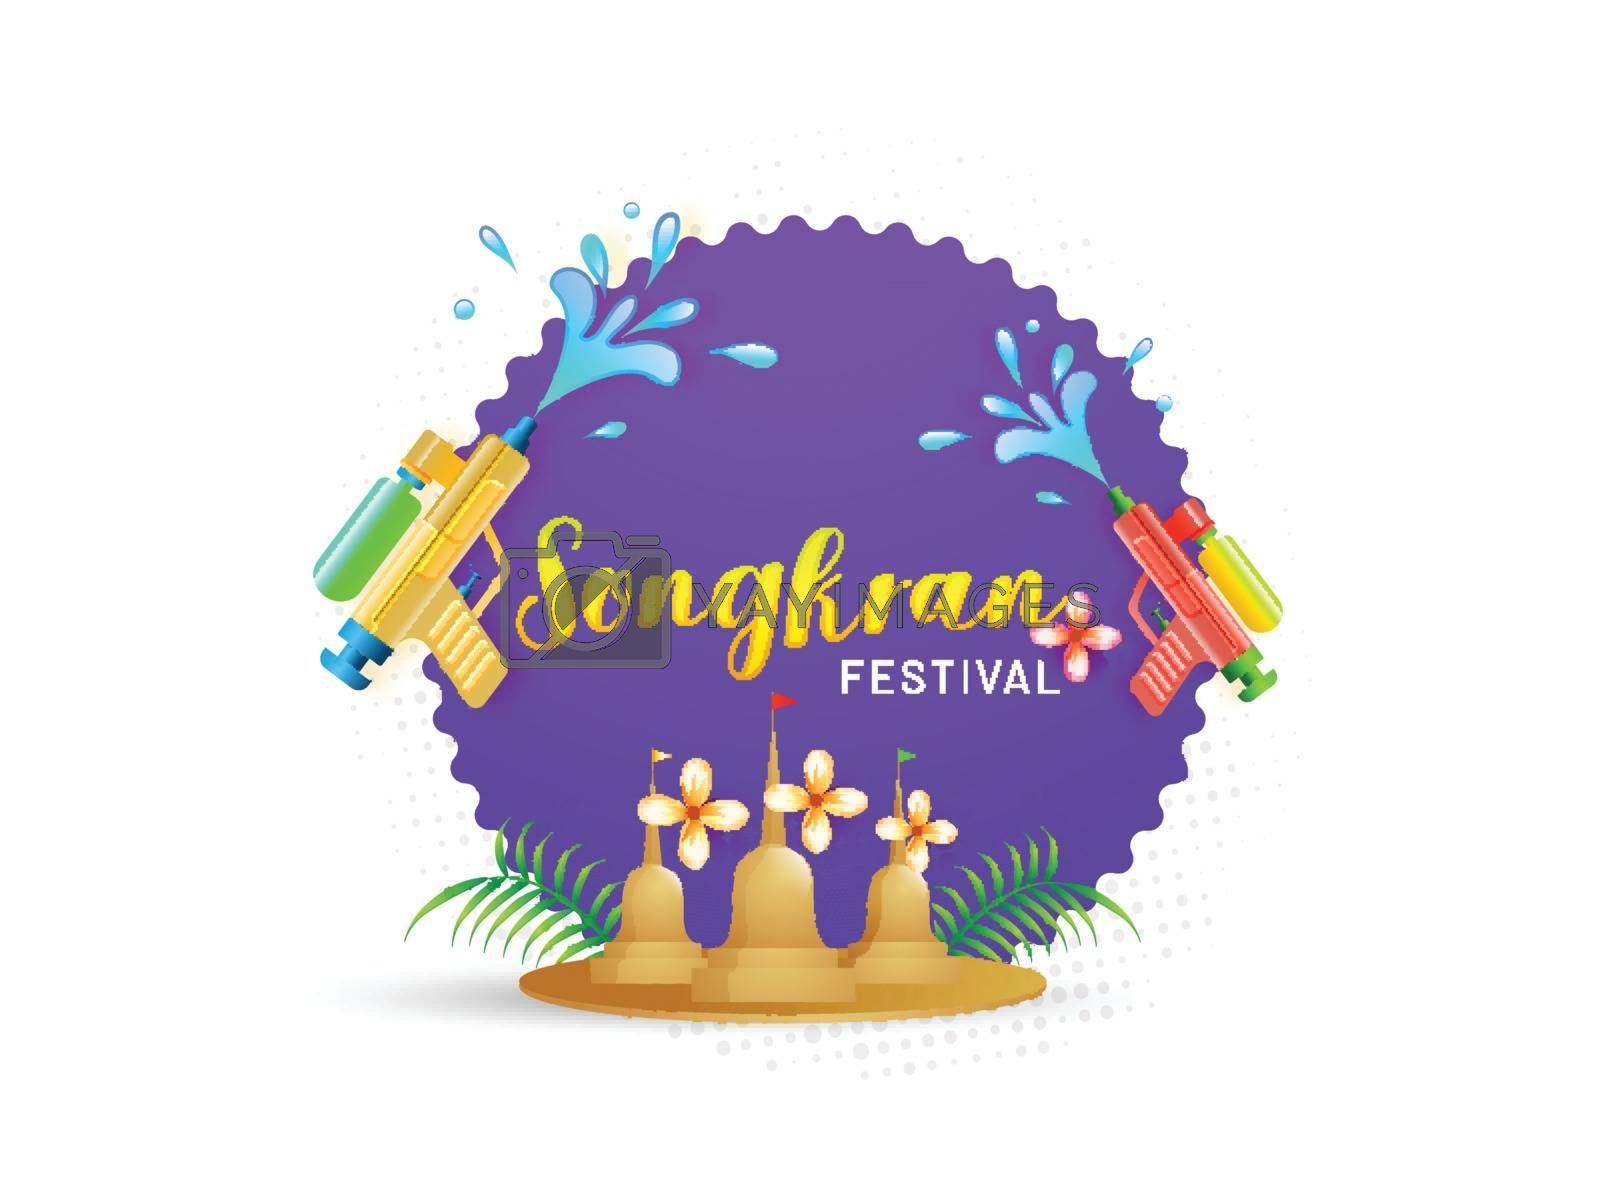 Royalty free image of Stylish text of Songkran Festival poster or flyer design  on pur by aispl